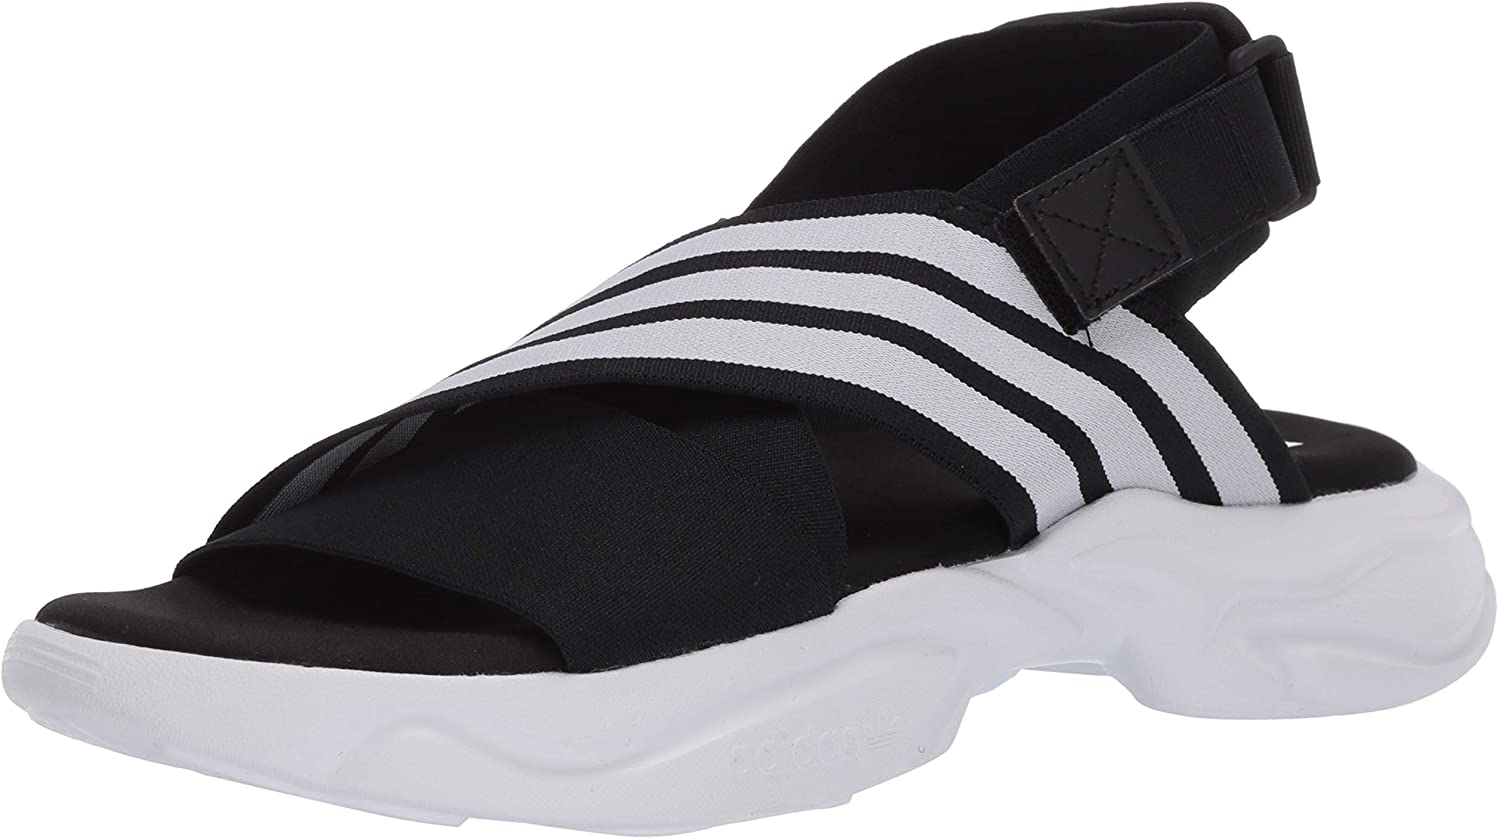 adidas Originals Women's Sales of SALE items from new works discount Sandals Slide Magmur